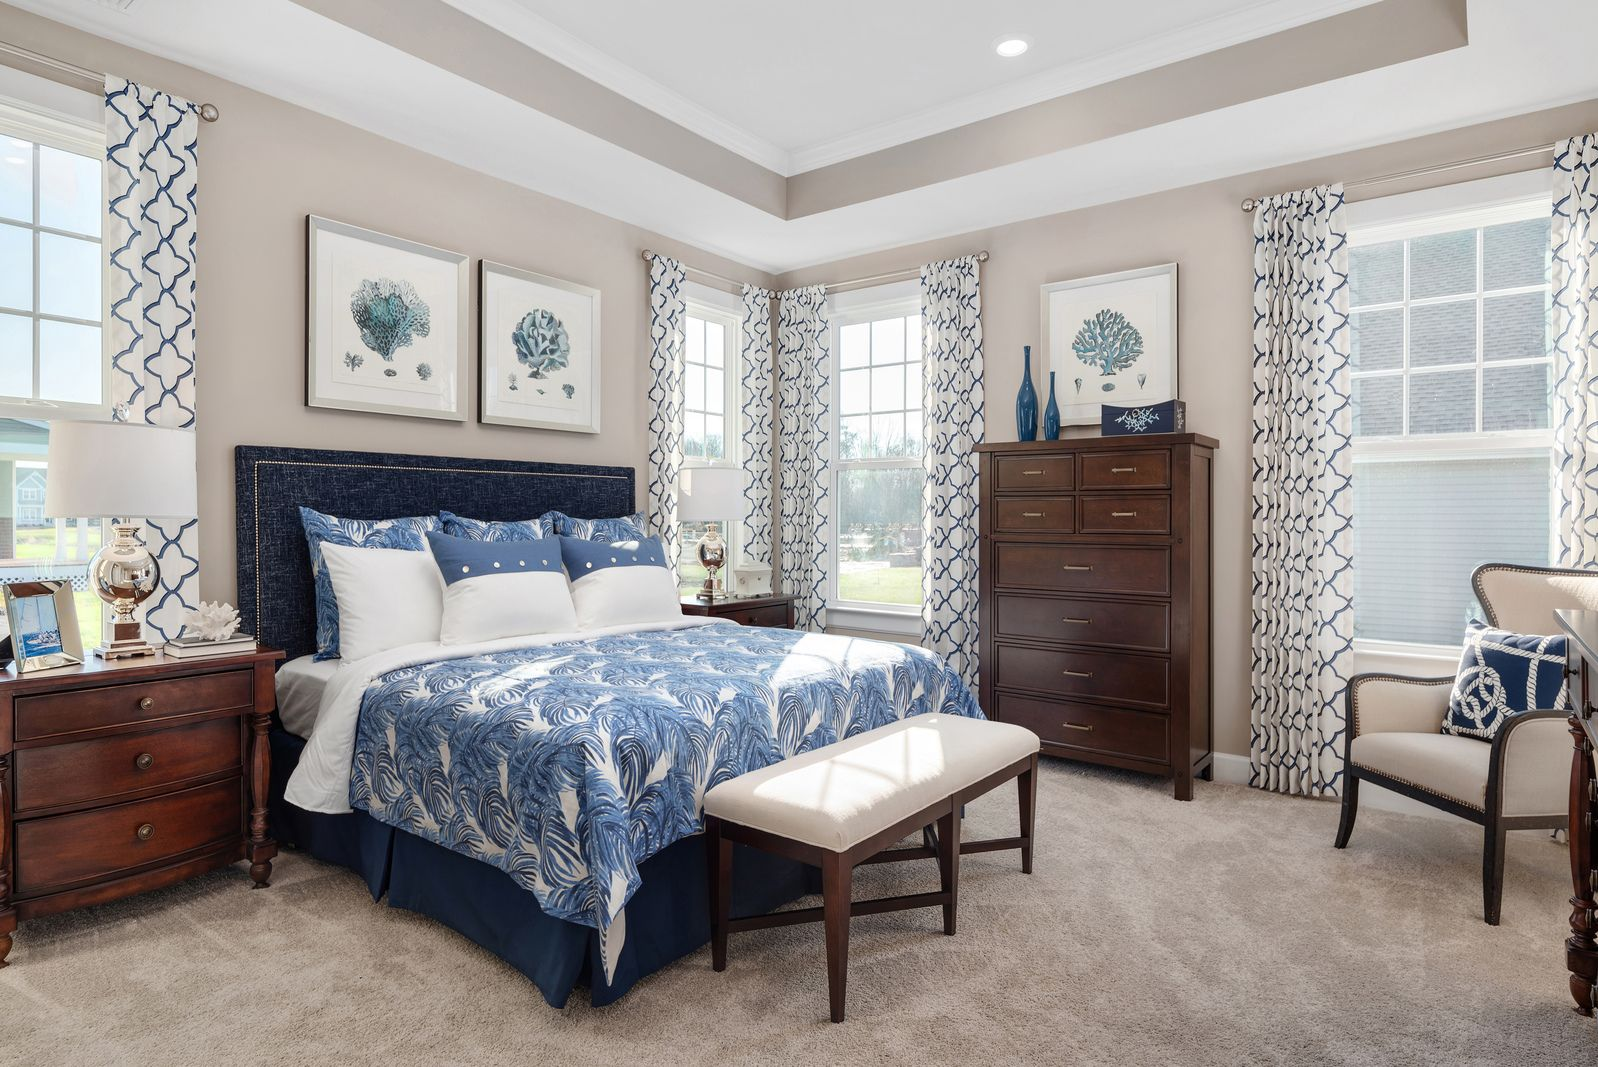 Bedroom featured in the Edgewood By NVHomes in Sussex, DE